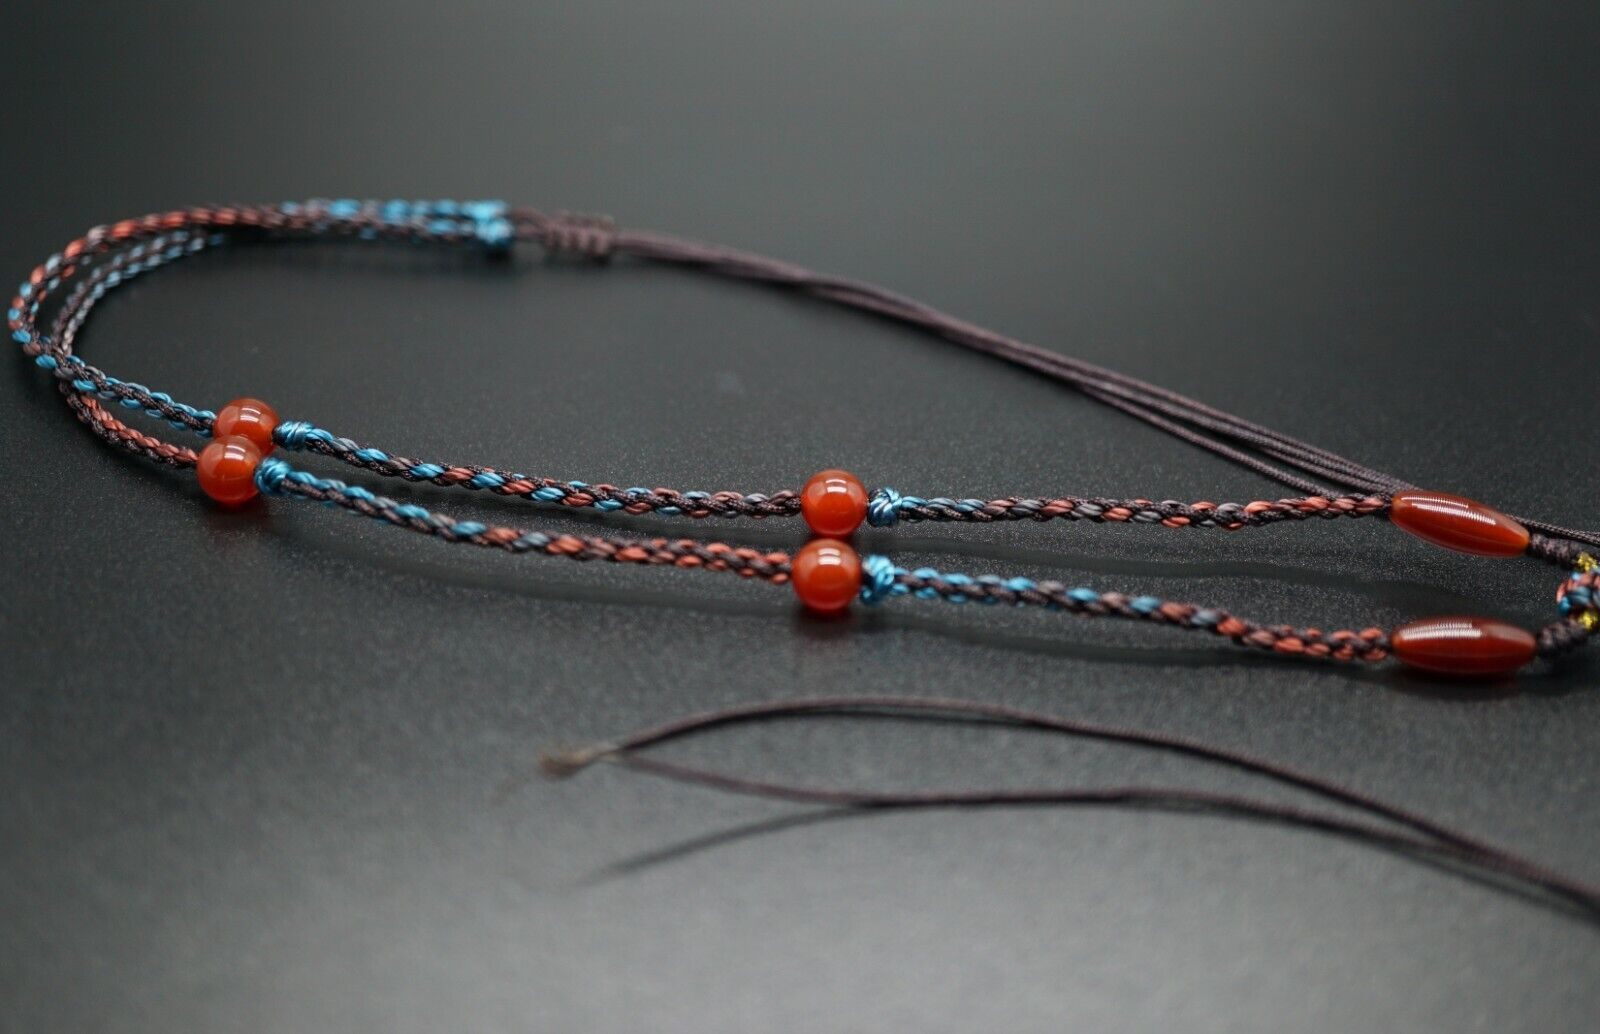 Handmade Colorful Cord Necklace Mixed Cord With Carnelian Beads Jewelry Diy  - $25.00